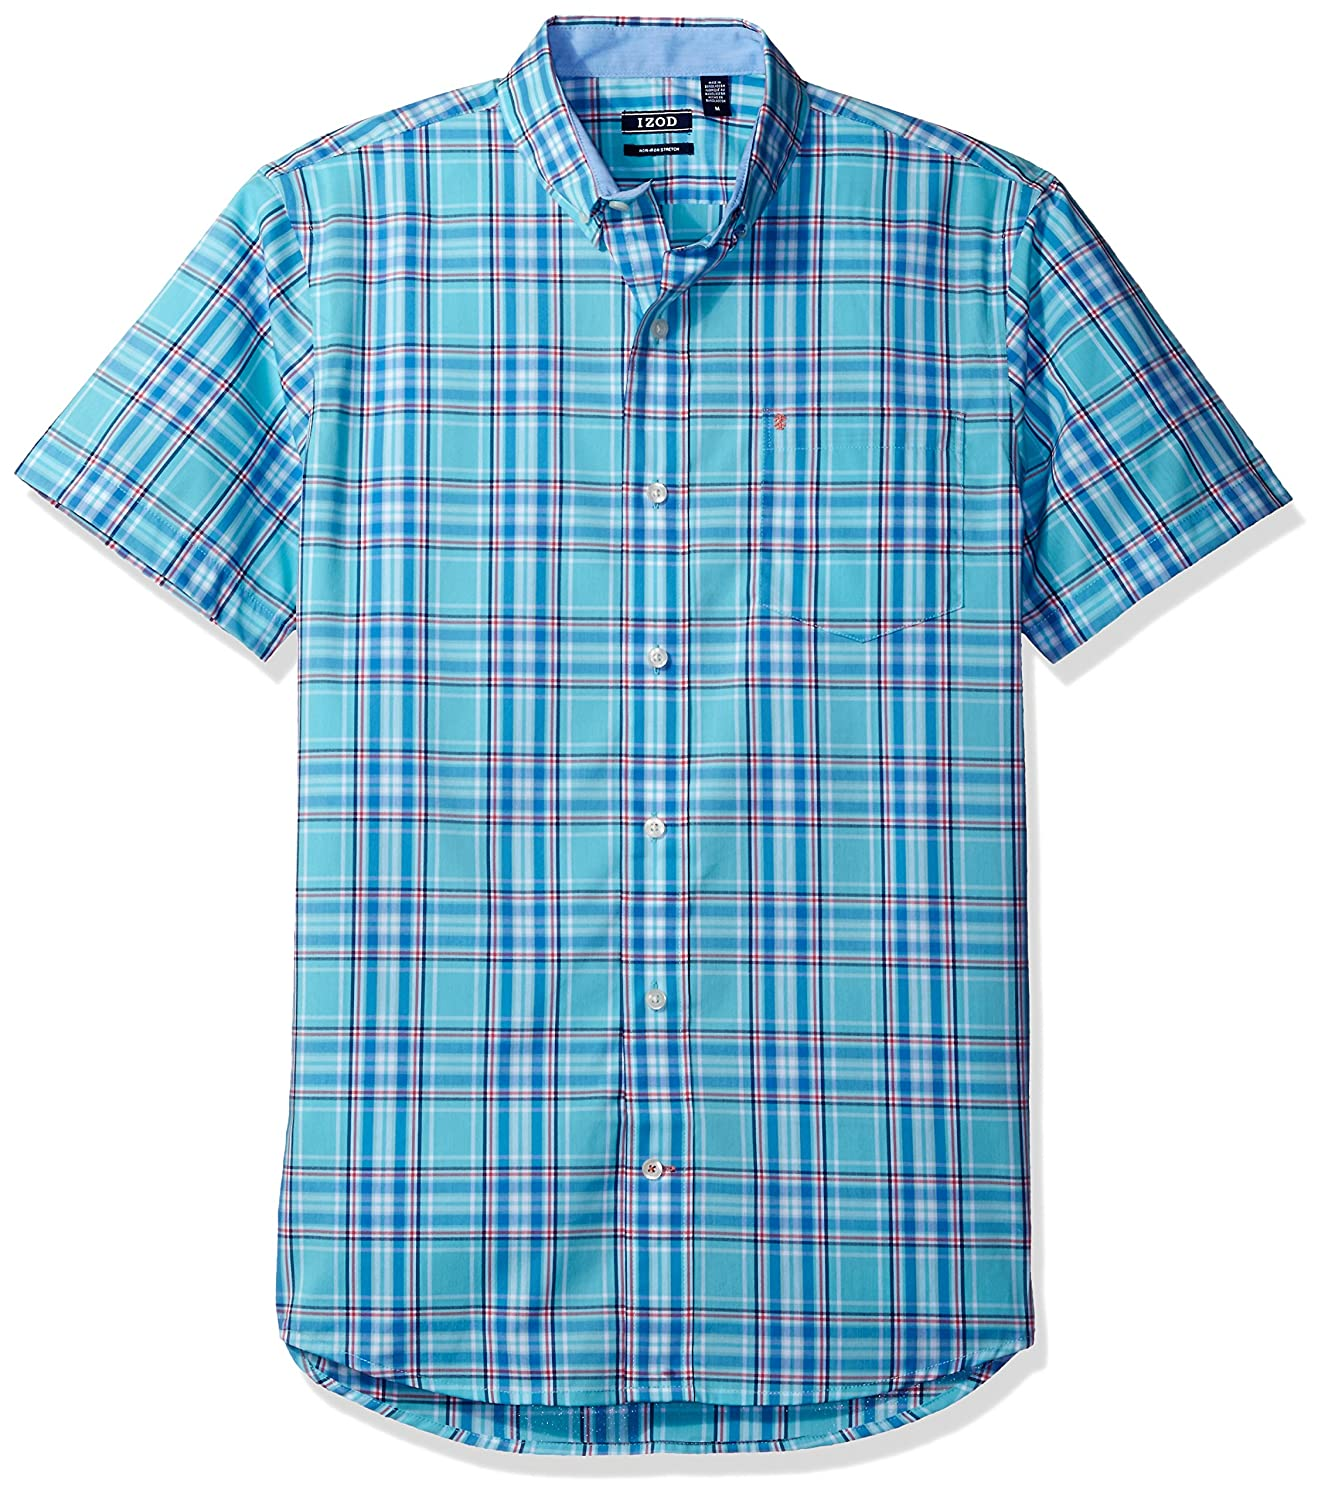 Izod Mens Advantage Performance Easycare Plaid Short Sleeve Shirt IZOD Men's Sportswear 45SW740-505246